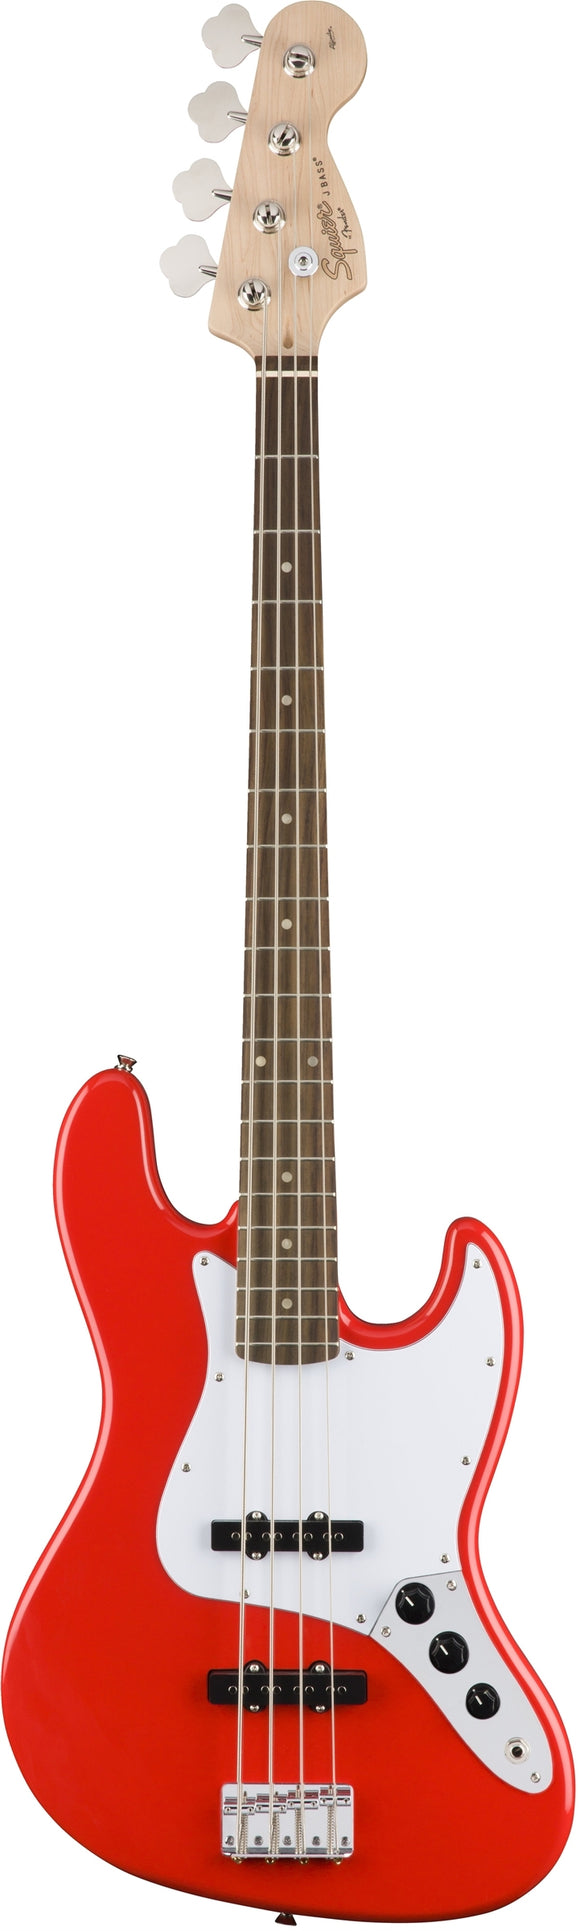 Squier Affinity Jazz Bass - Race Red